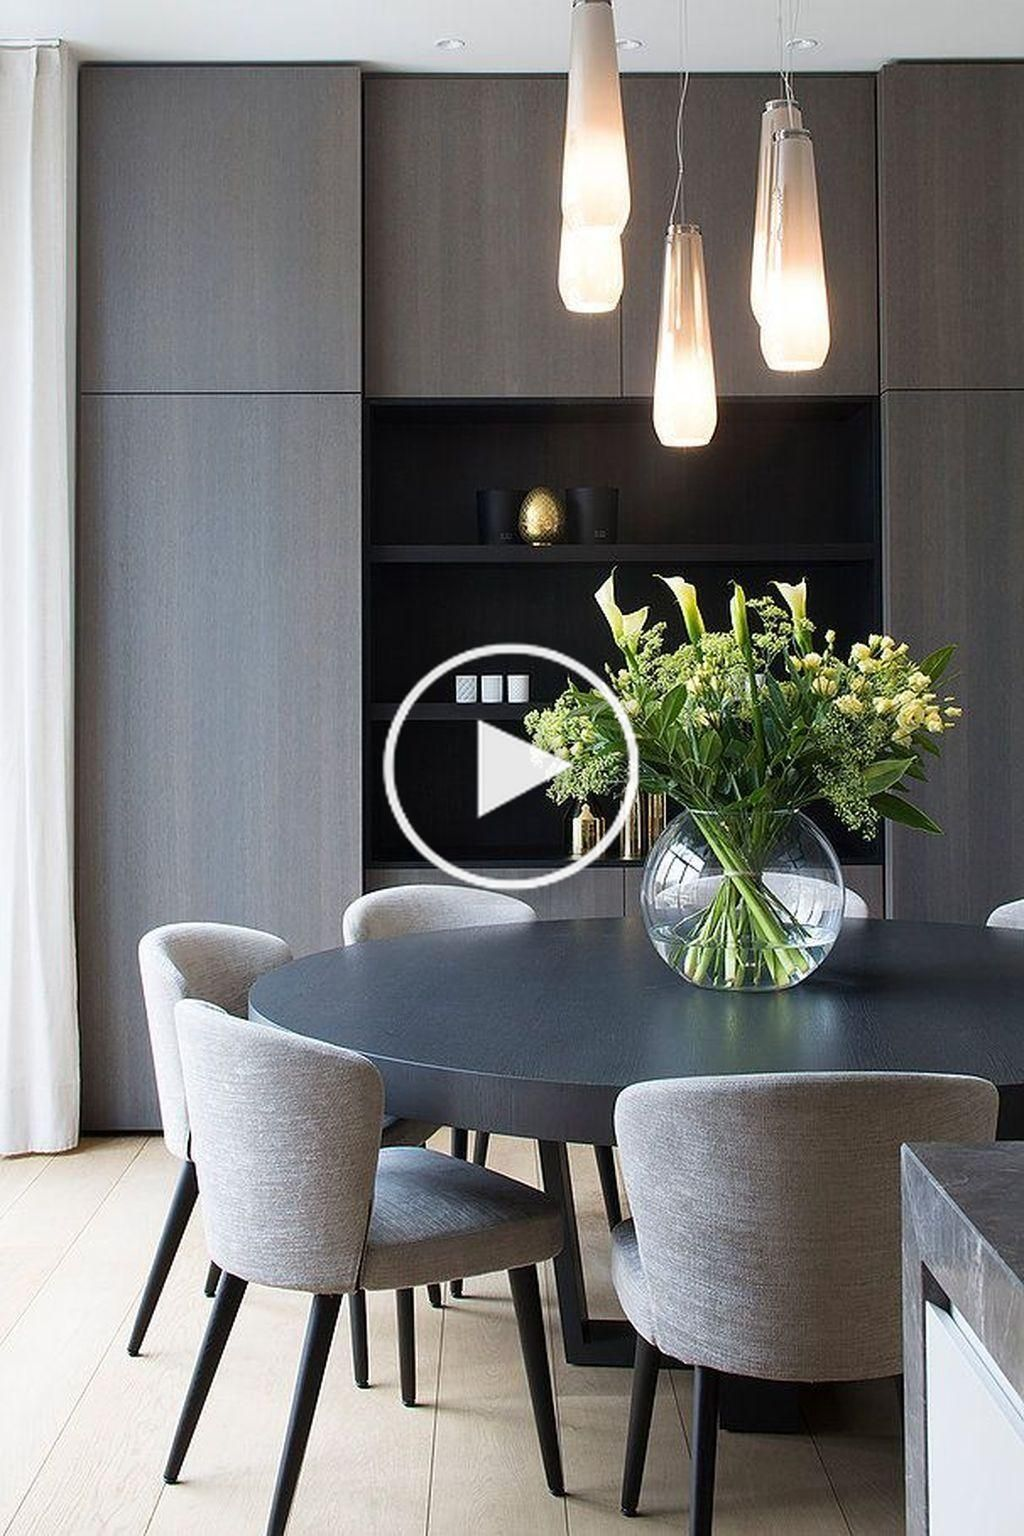 Download Catalogue Dining Chair Design Contemporary Dining Room Design Luxury Dining In 2020 Round Dining Room Table Dining Chair Design Dining Room Design